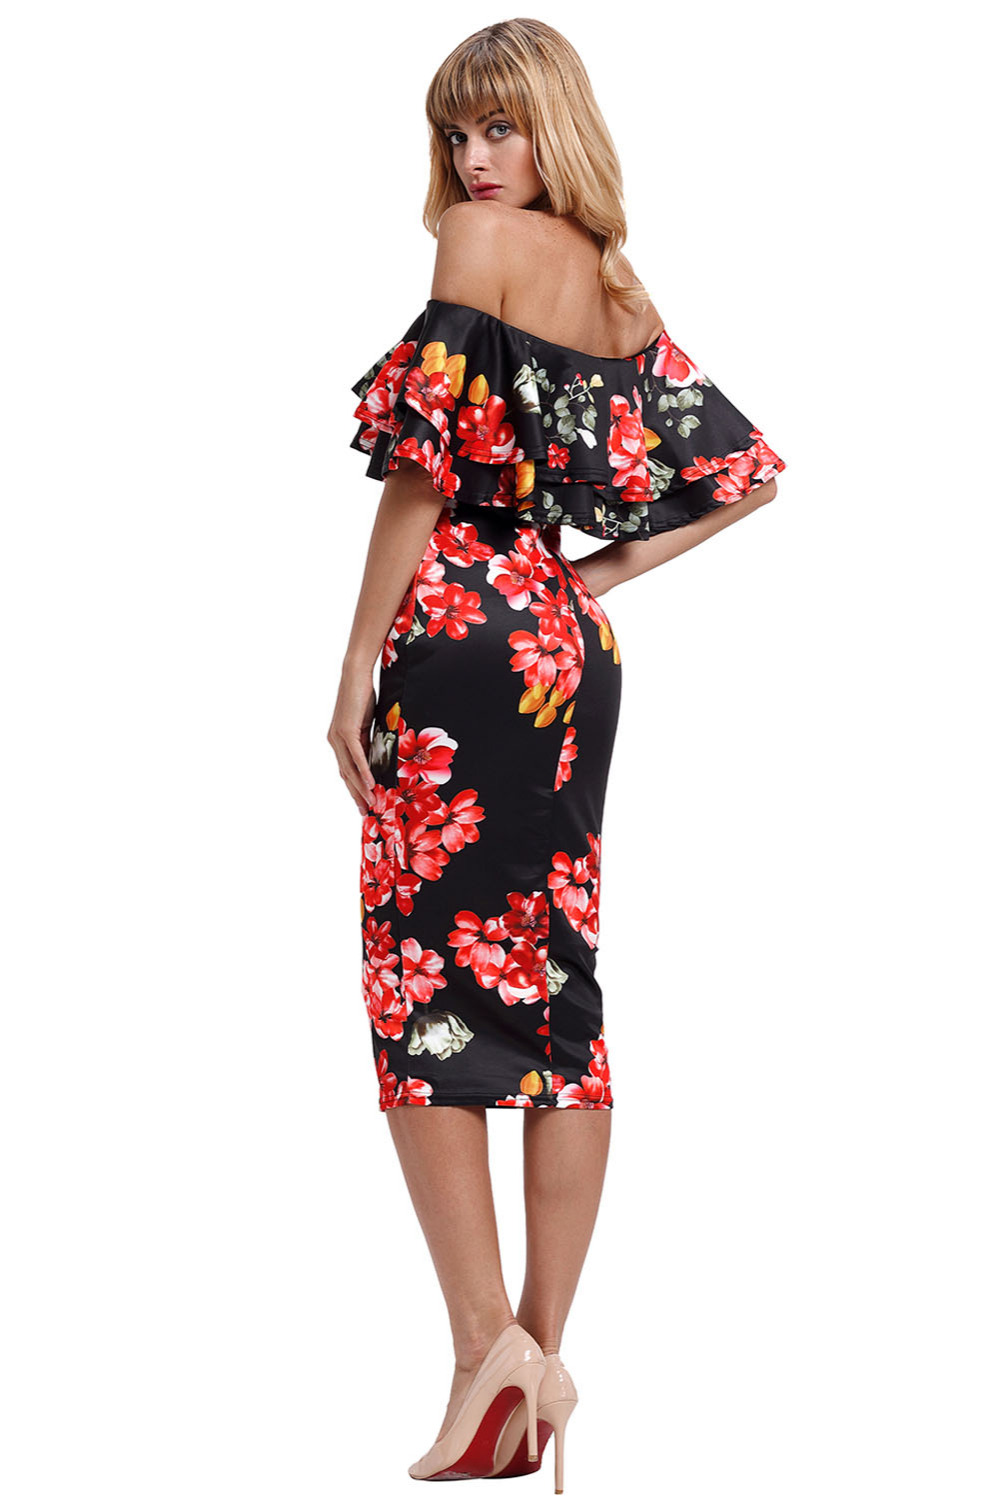 2d8dd9903b18 Woman clothes Bodycon Spring Office Ladies Dresses Casual Vestidos Black  Red Floral Layered Ruffle Off Shoulder Midi Dress 61611-in Dresses from  Women s ...